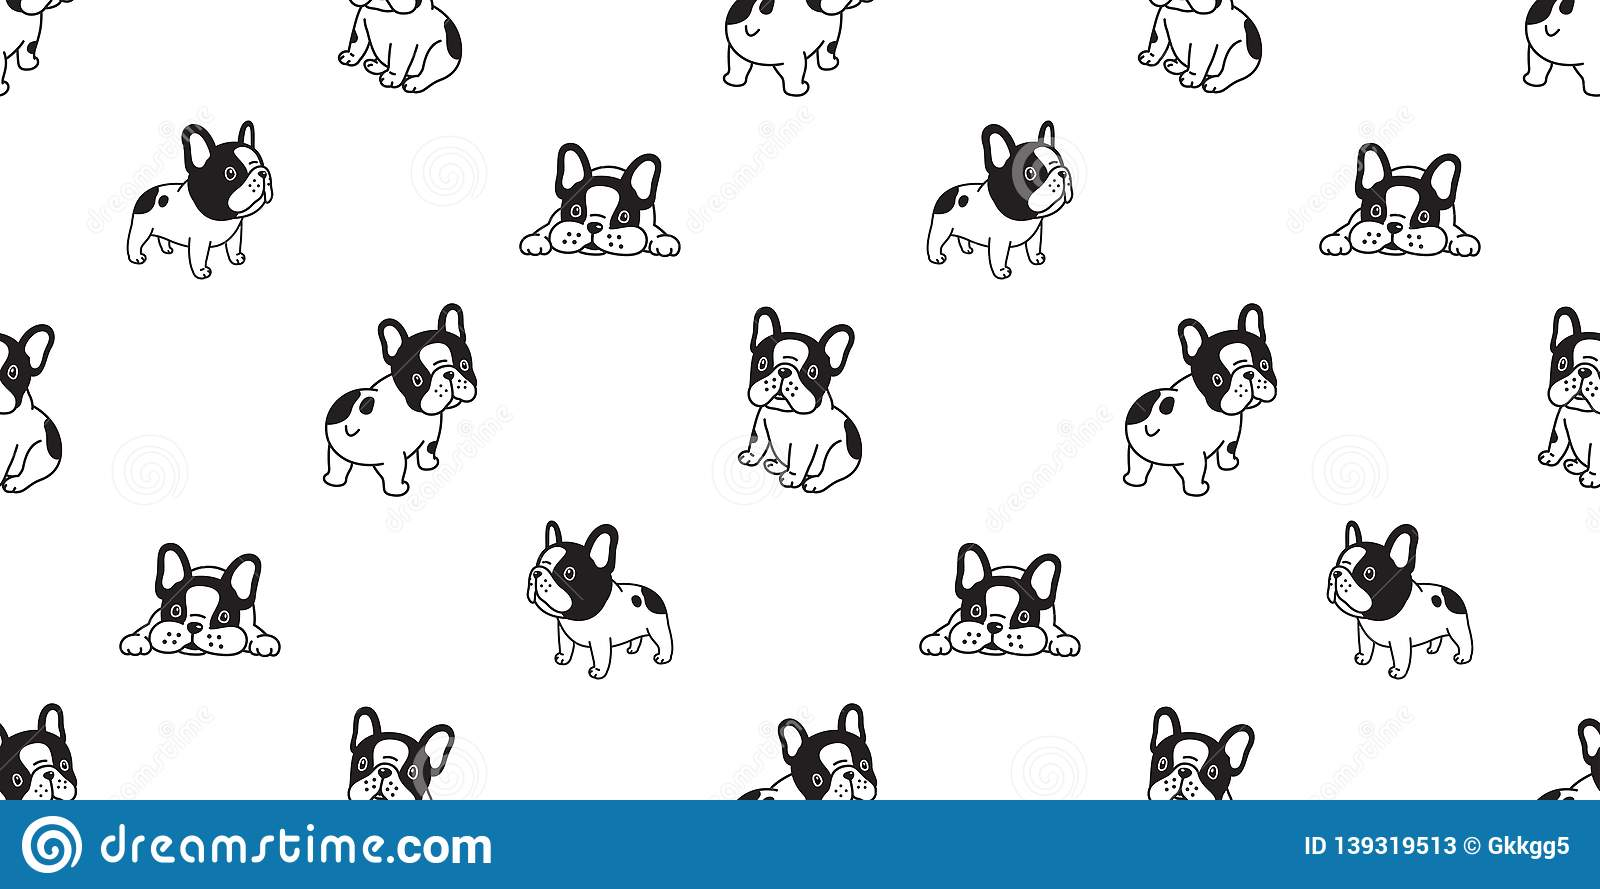 Dog Seamless Pattern French Bulldog Vector Scarf Isolated Cartoon Repeat Wallpaper Tile Background Illustration Stock Vector Illustration Of Puppy Graphic 139319513